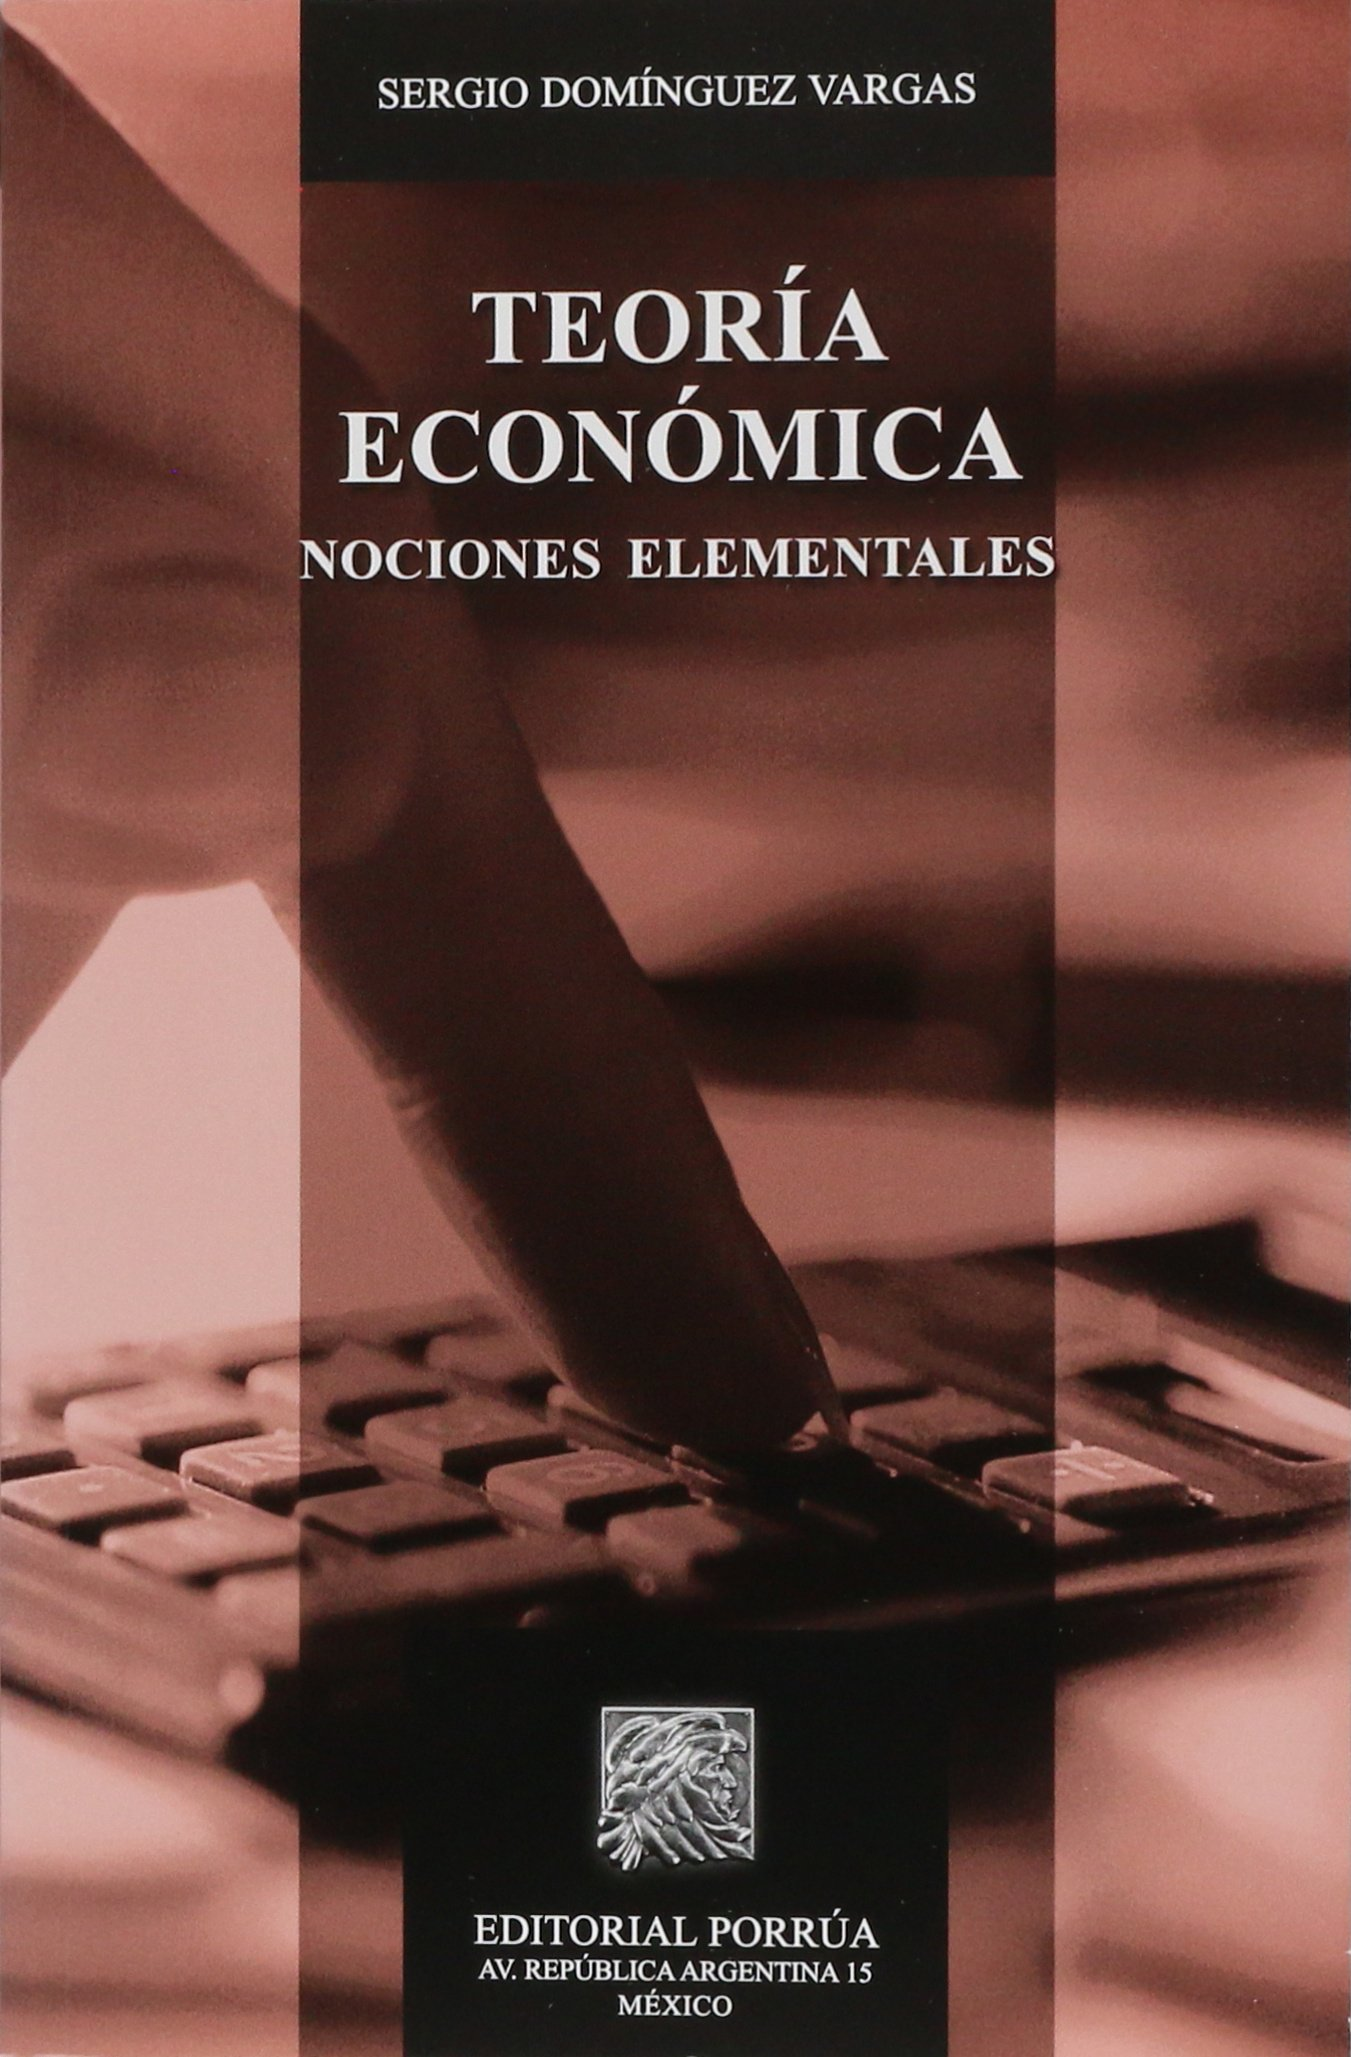 guillaume musso books in english pdf